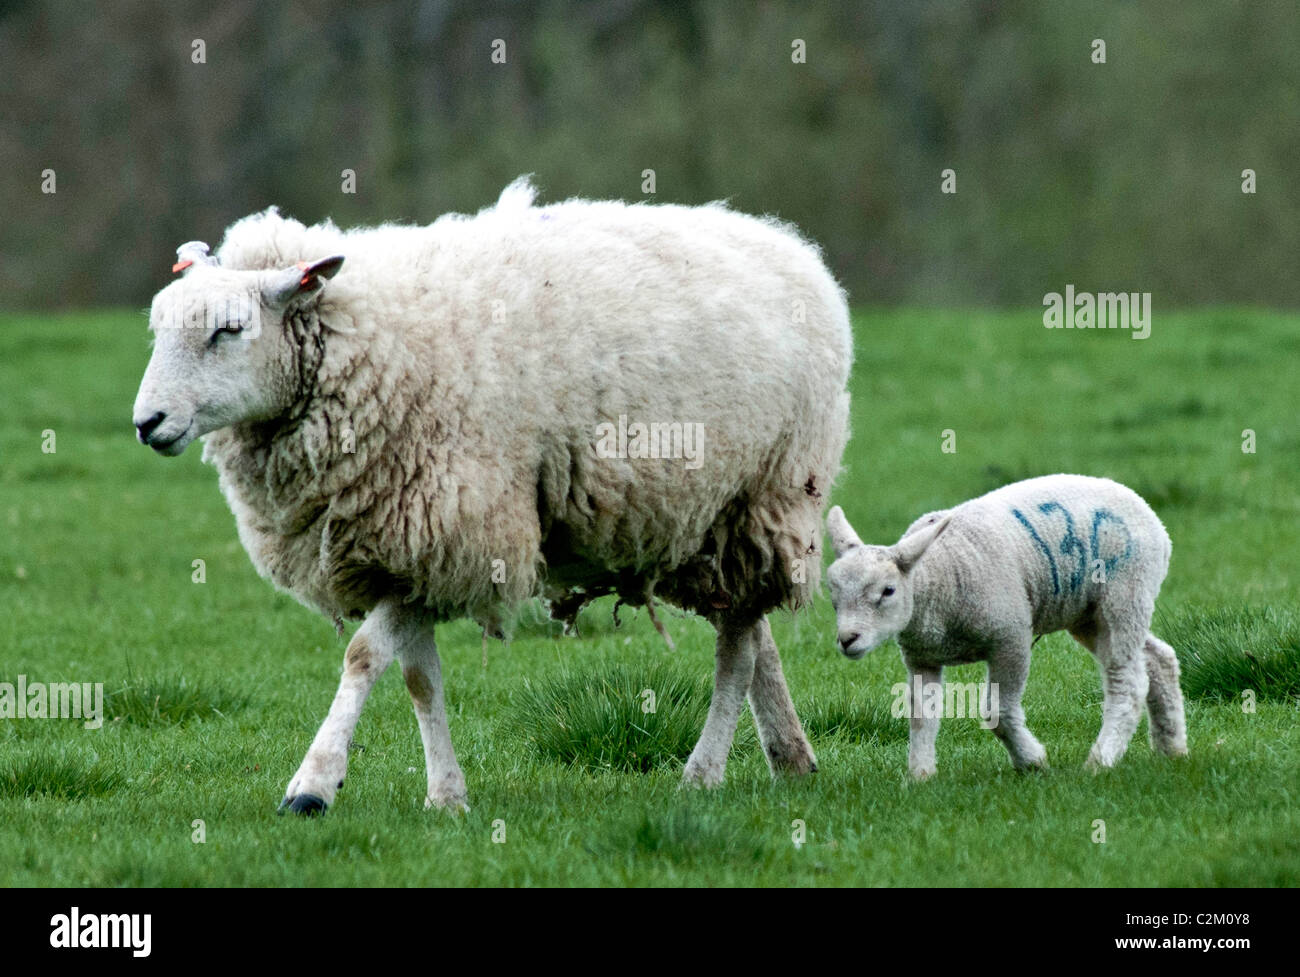 Mother sheep, ewe, with lamb in a field - Stock Image